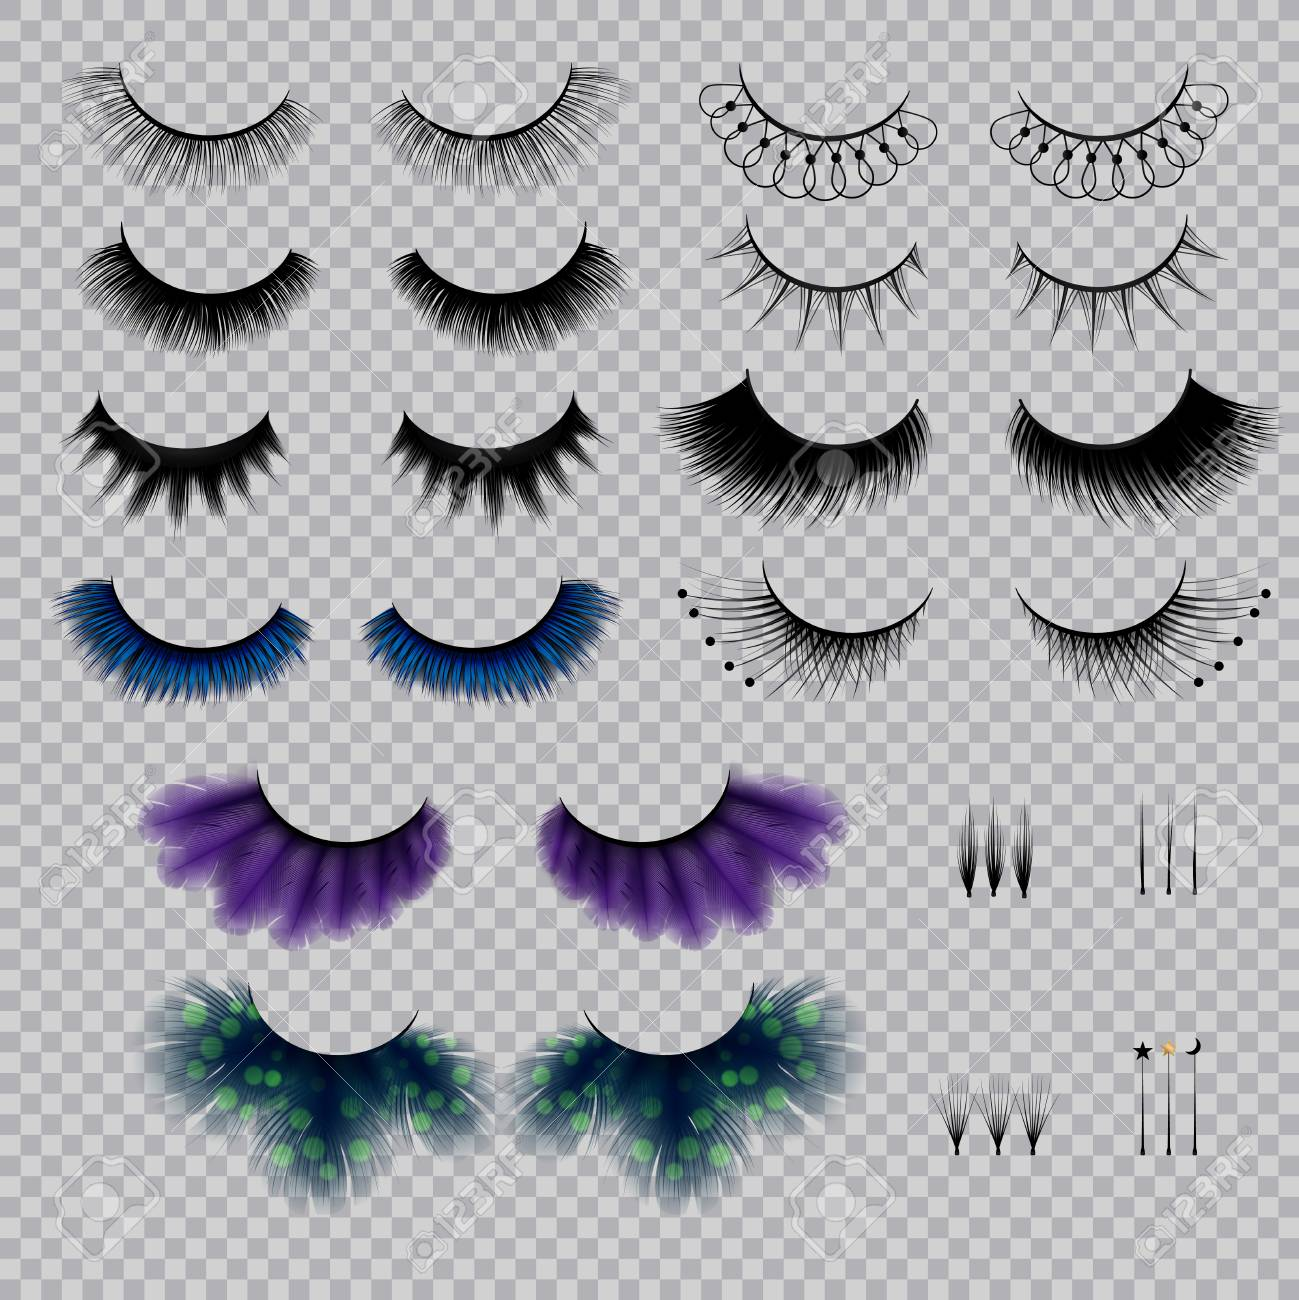 ba098f06636 False eye lashes of various shape and color realistic set on transparent  background isolated vector illustration